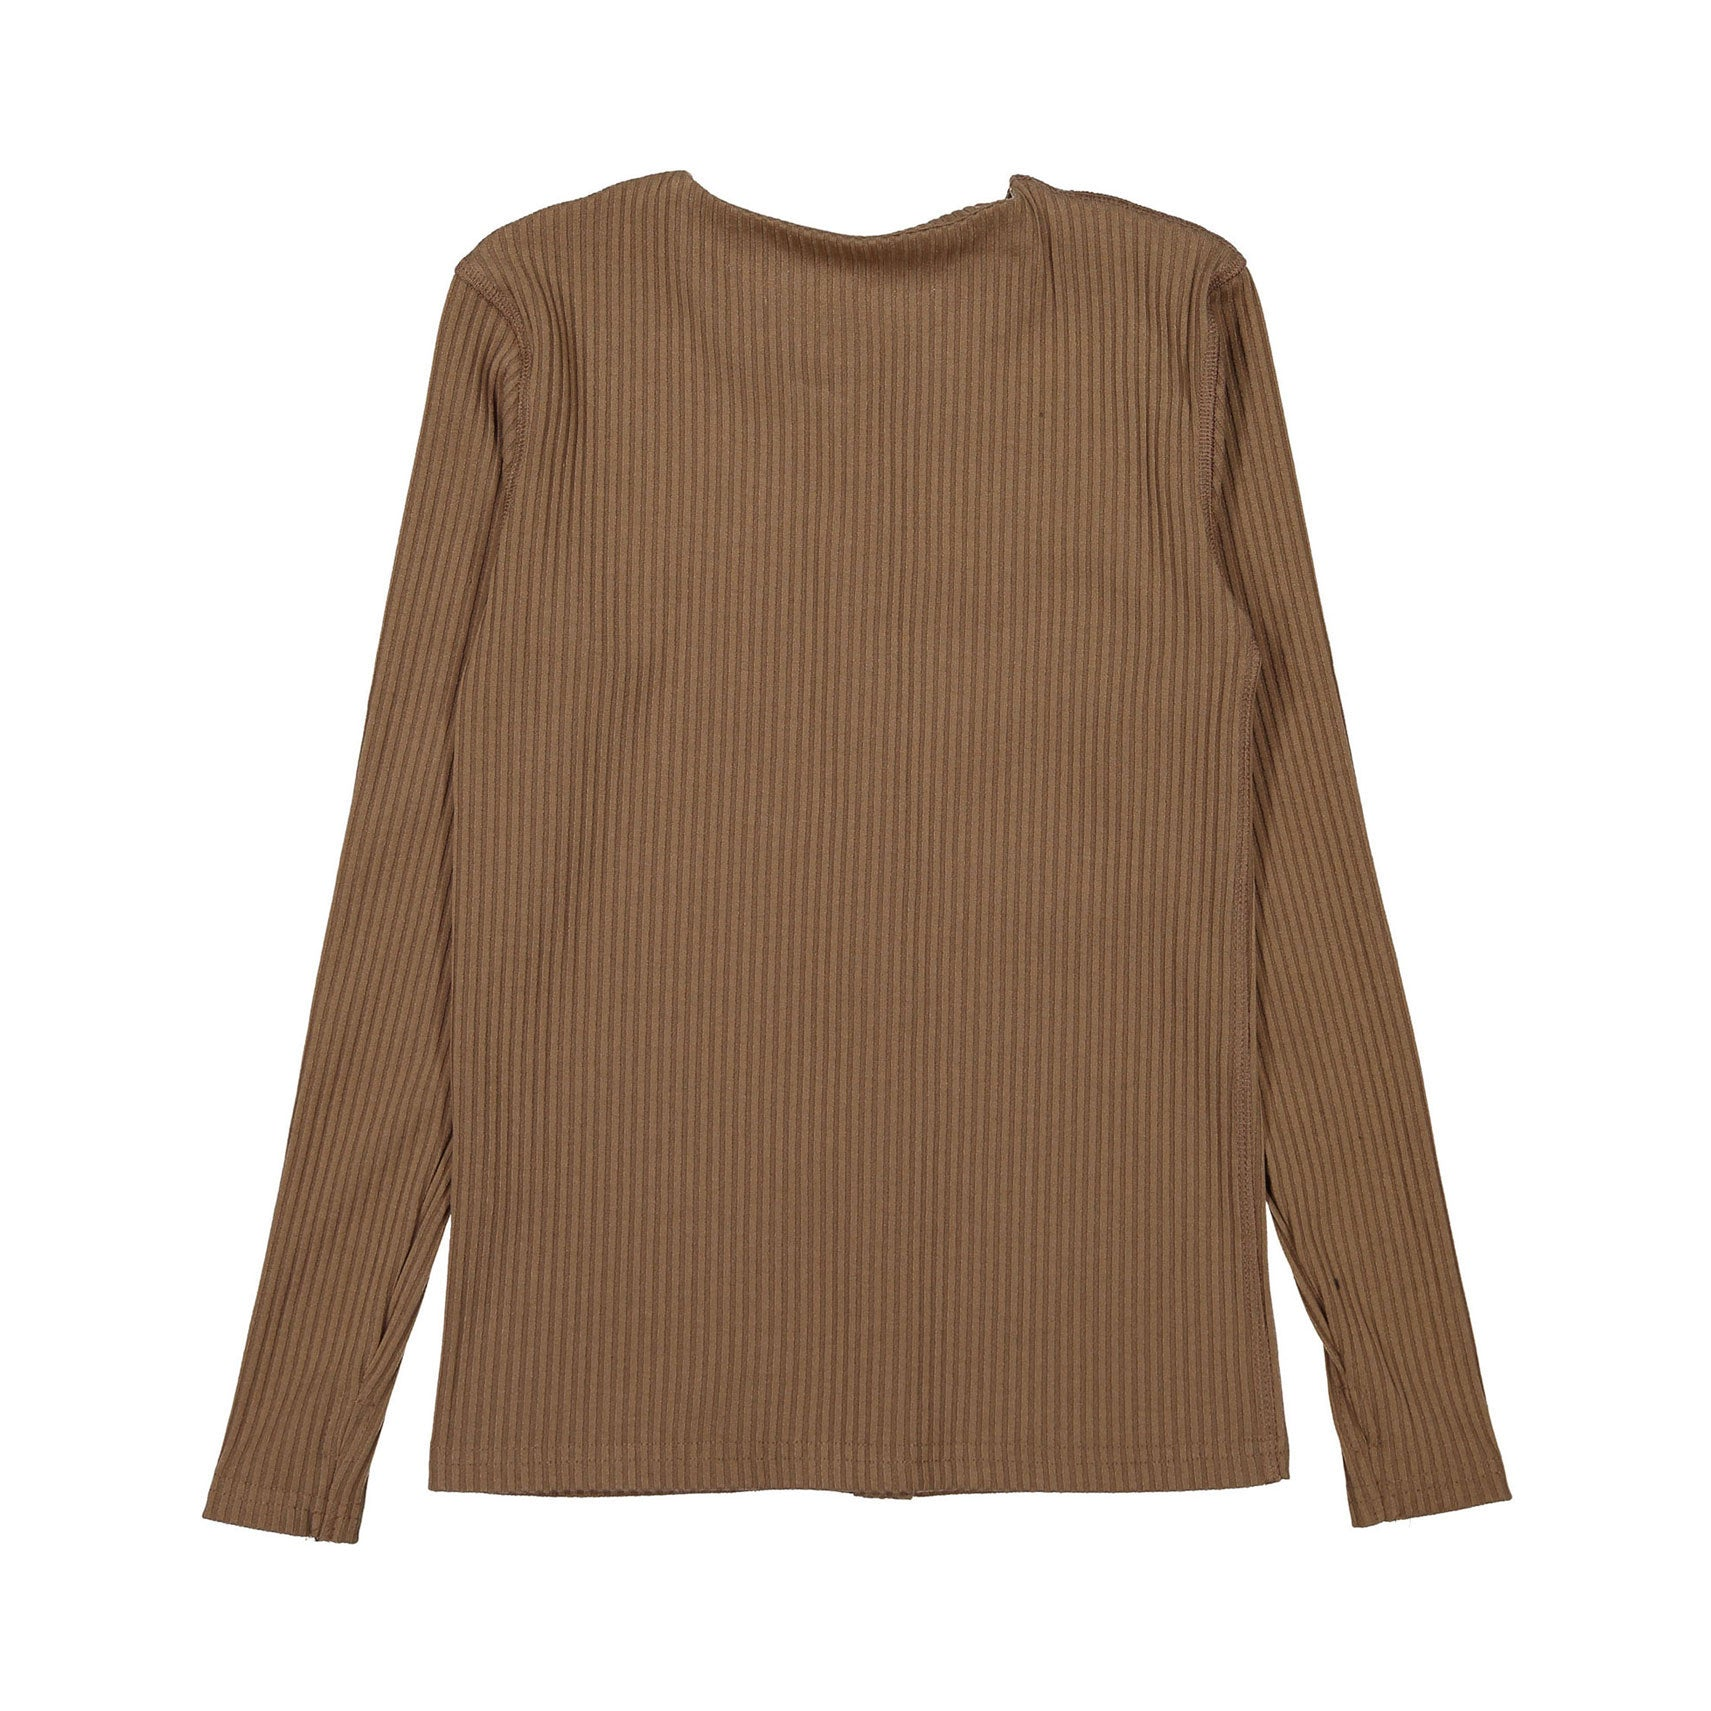 Ava and Lu Tan Ribbed Thin Button Cardigan